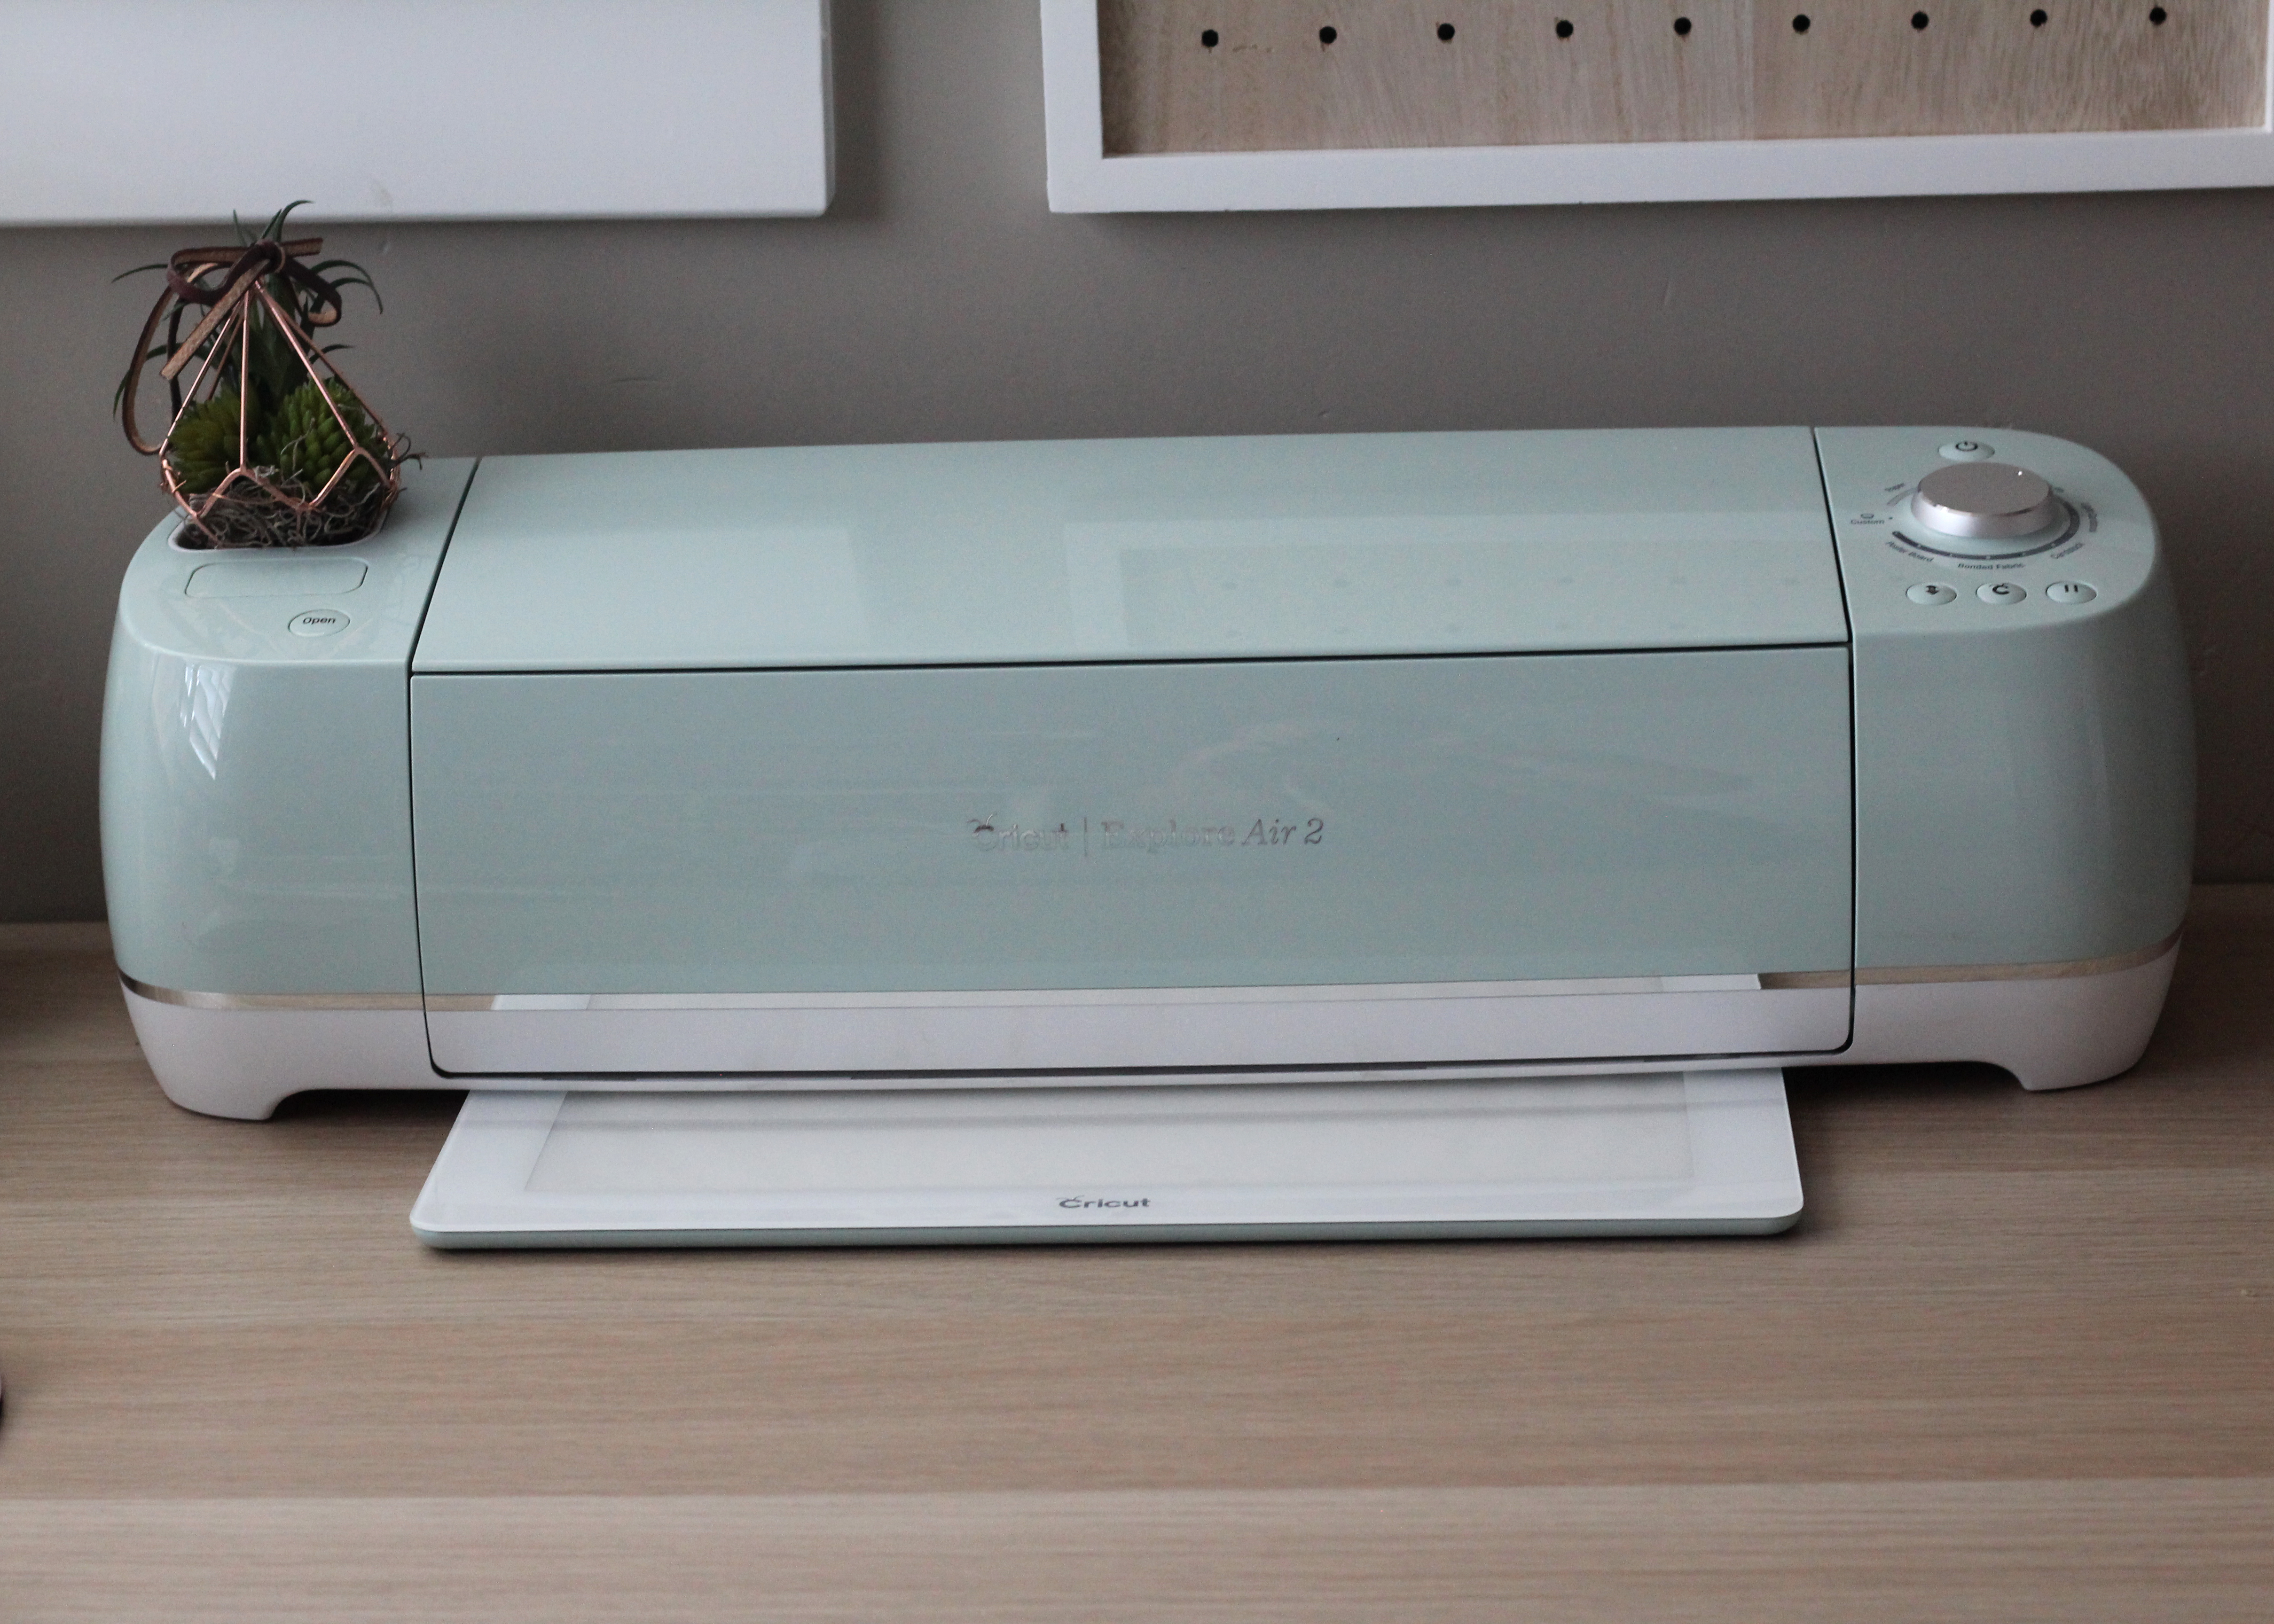 Cricut Brightpad review by www.sugarcoatedhousewife See why you need the Brightpad as a part of your crafting tools.